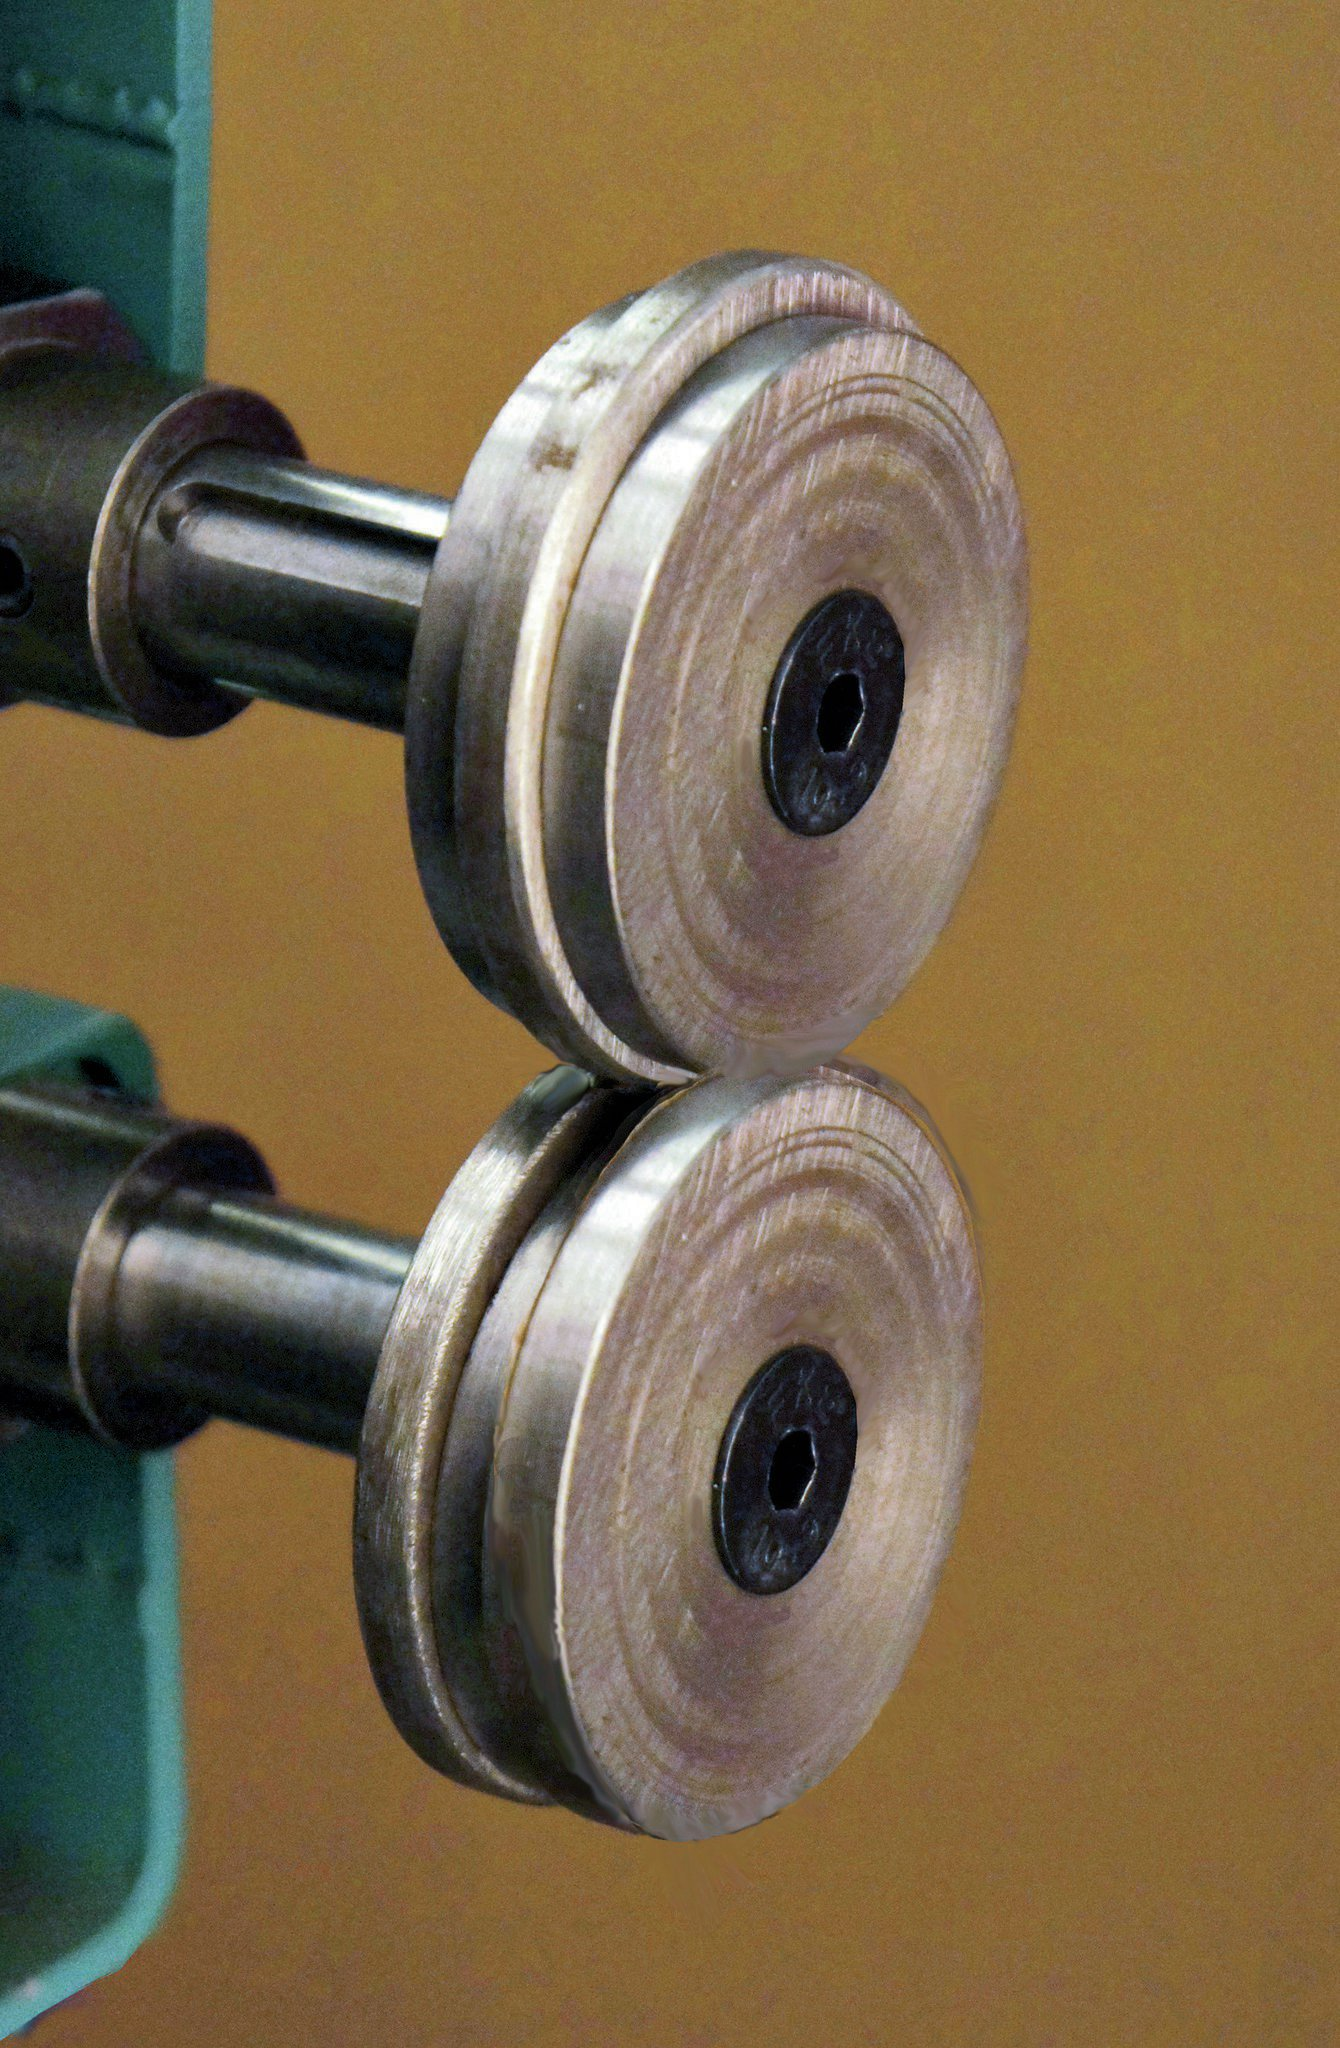 This is a set of simple, shop-made dies for a beading machine. They are made from flat washers, 21⁄2-inch OD, and 1⁄4-inch thick. You may have to drill out the center hole to match your particular beading machine.